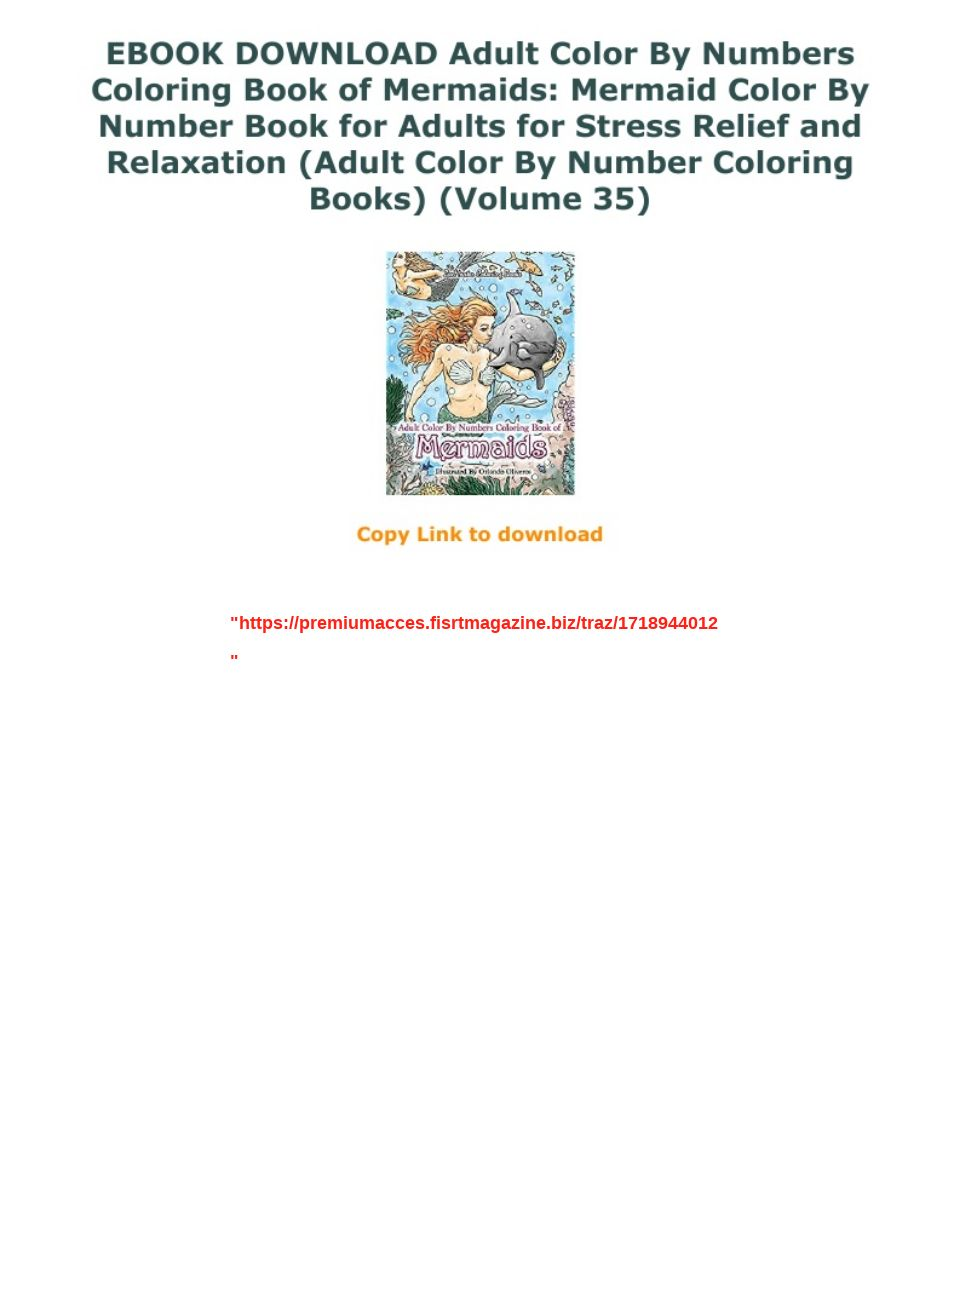 EBOOK DOWNLOAD Adult Color By Numbers Coloring Book of Mermaids: Mermaid Color By Number Book for Ad